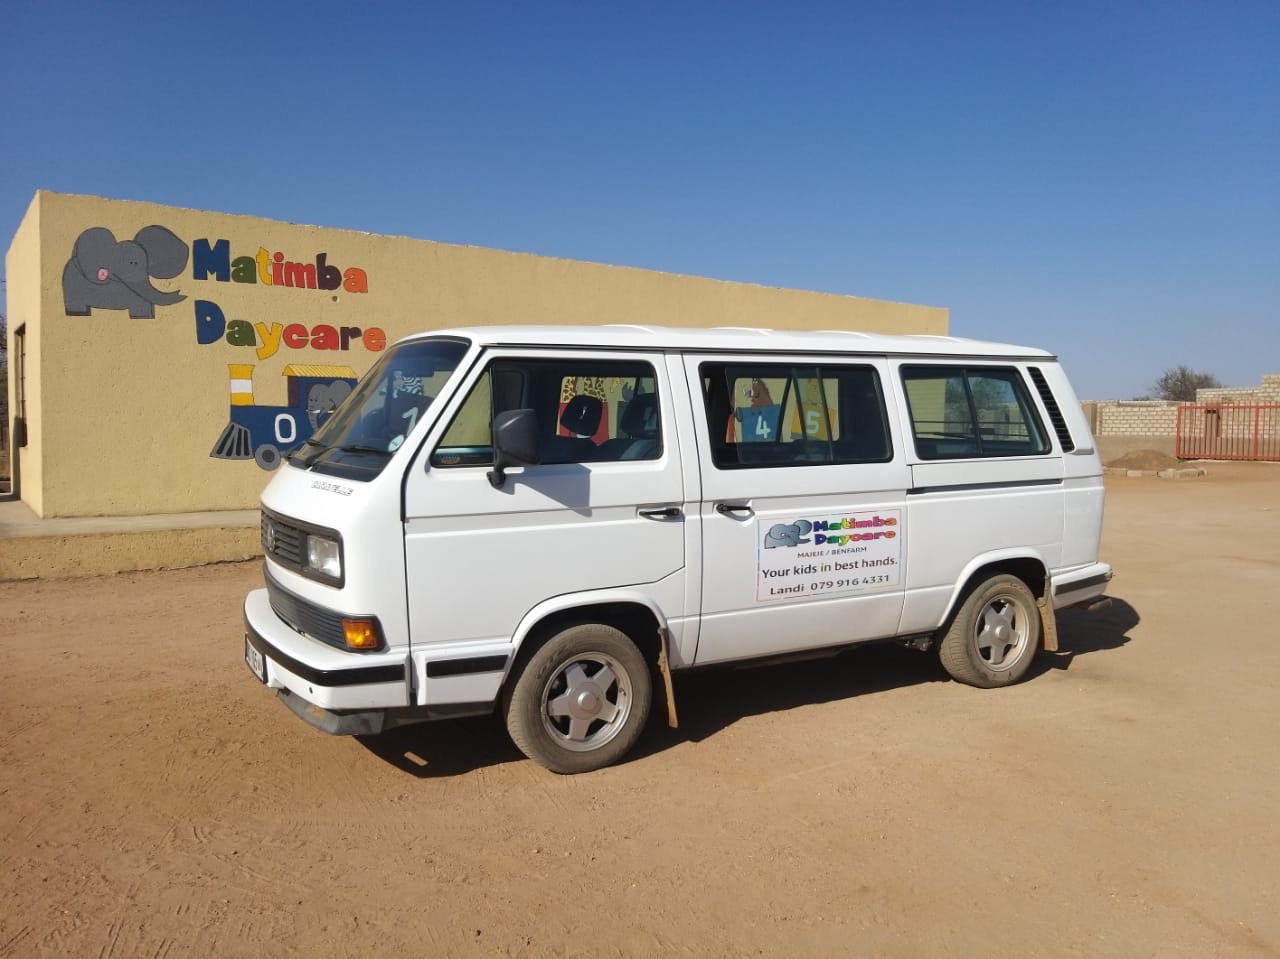 Matimba Day Care transport